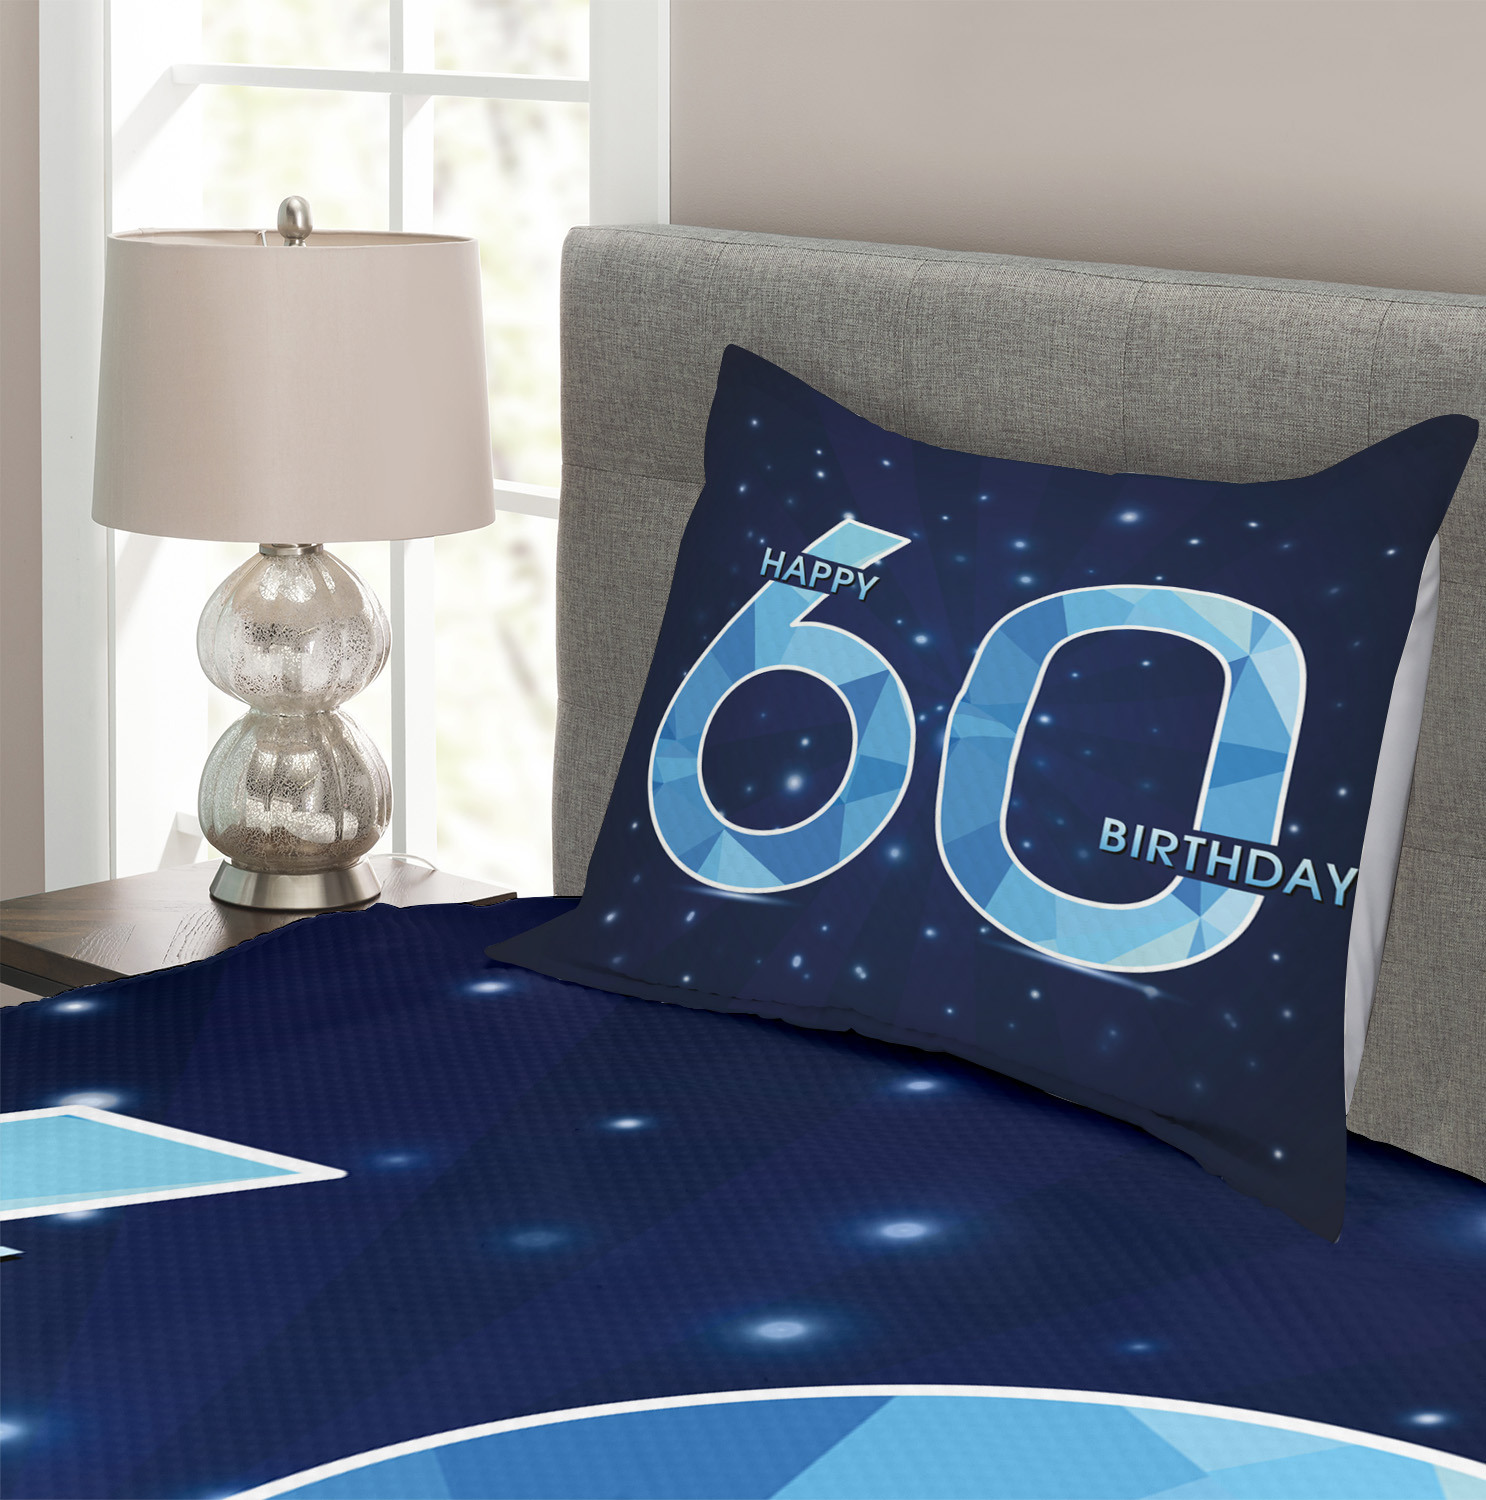 Details about  /Party Quilted Bedspread /& Pillow Shams Set Birthday 60 Stars Print